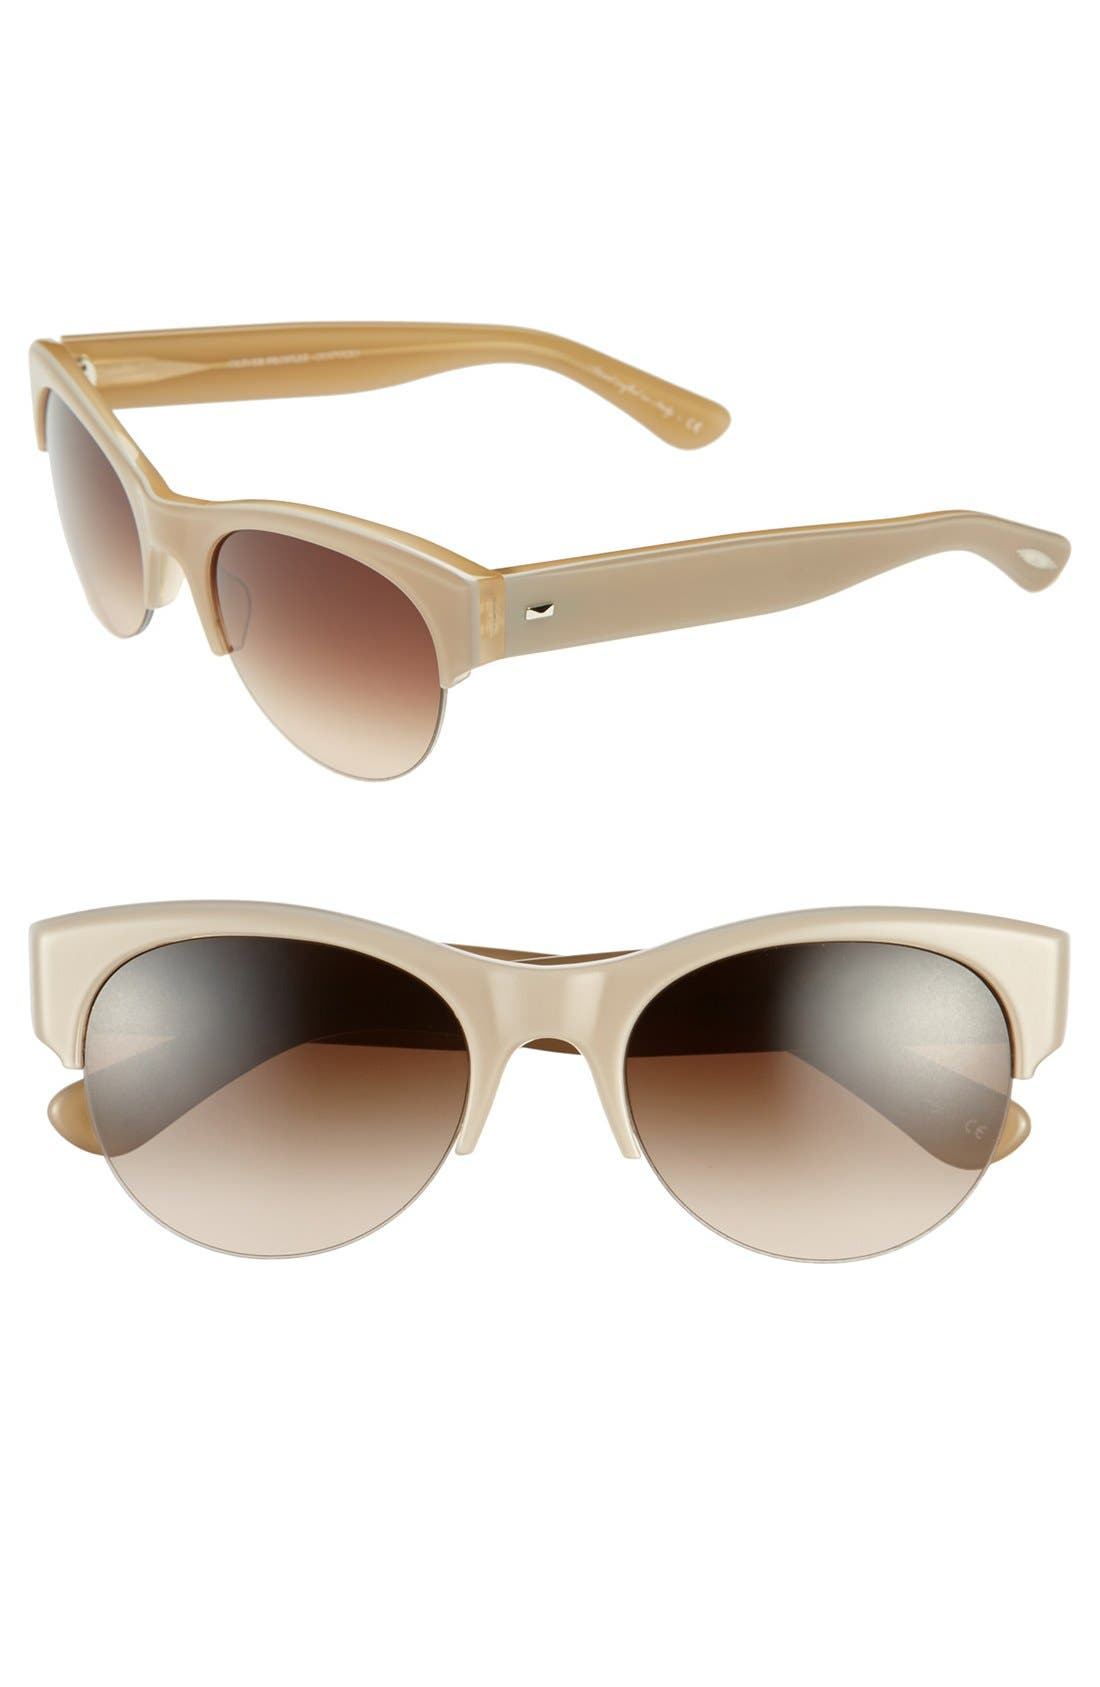 Alternate Image 1 Selected - Oliver Peoples 'Louella' 55mm Sunglasses